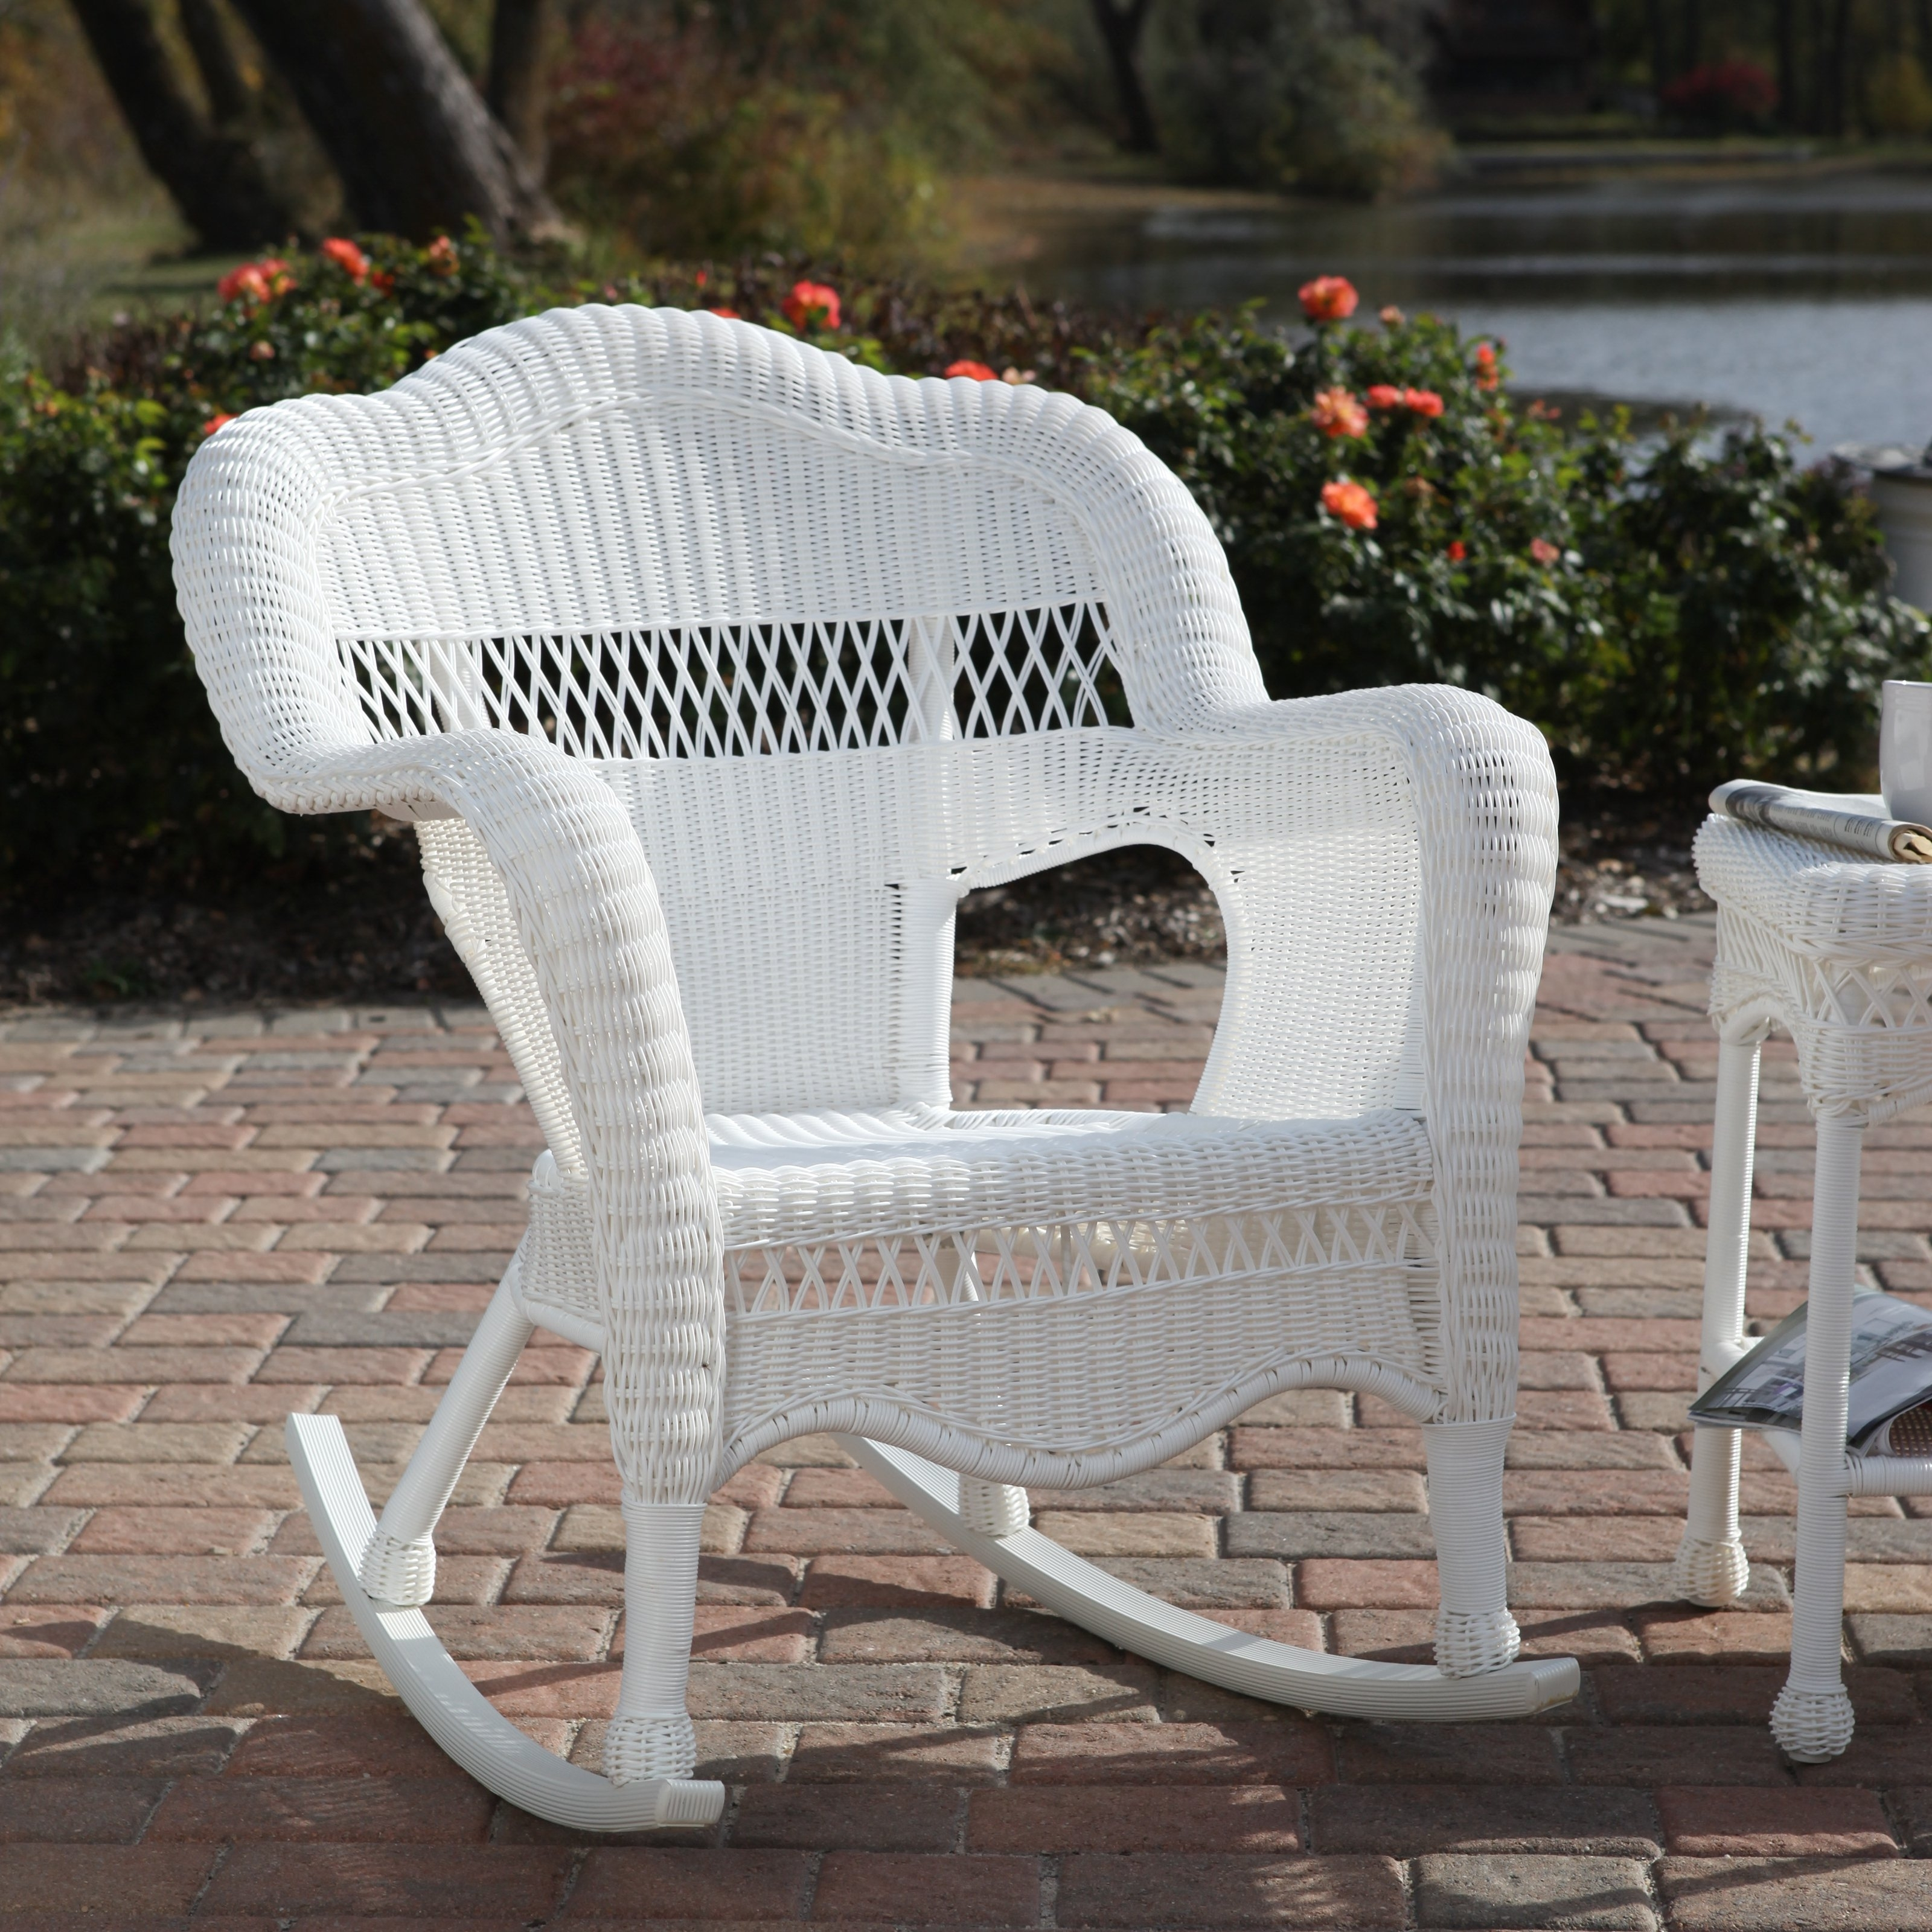 Chair Furniture Summer Decors Infused With White Wicker Furniture In Outdoor Rocking Chairs With Cushions Good Outdoor Rocking Chairs With Cushions